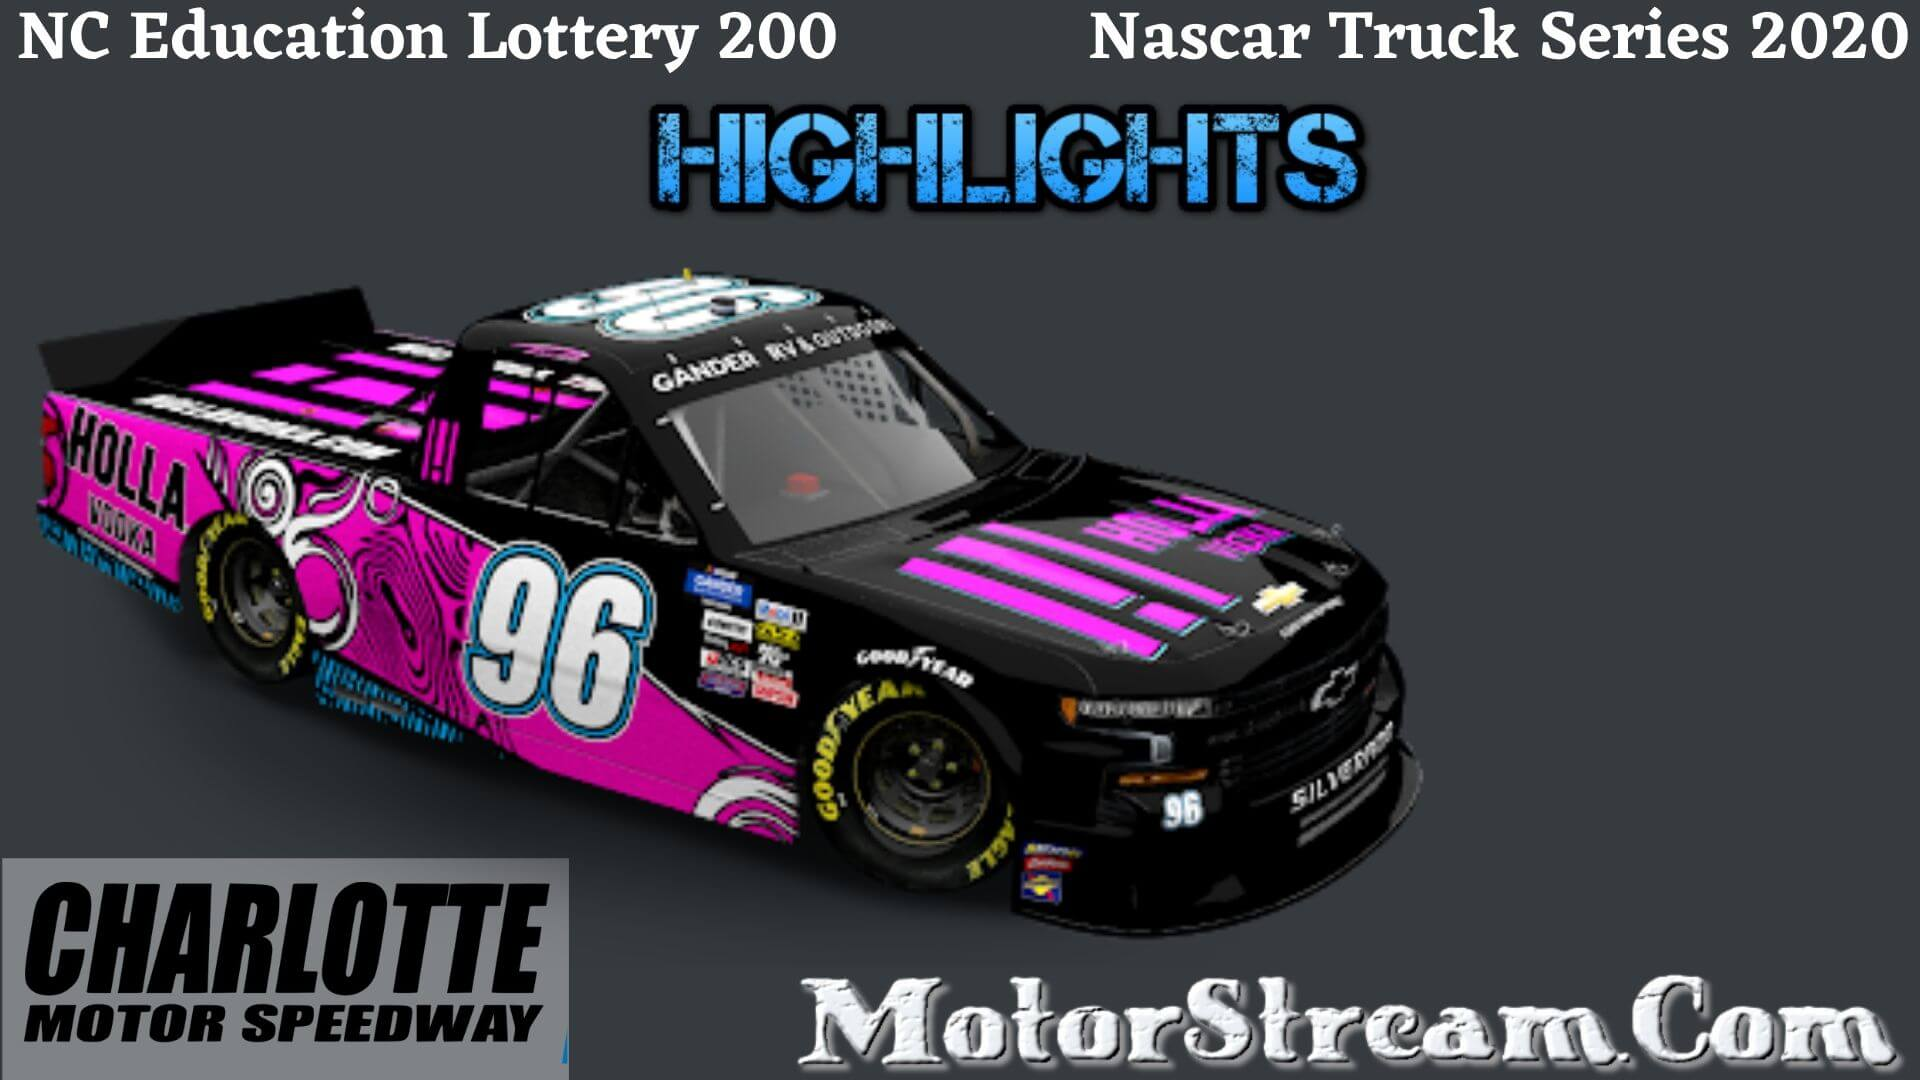 NC Education Lottery 200 Highlights 2020 Truck Series